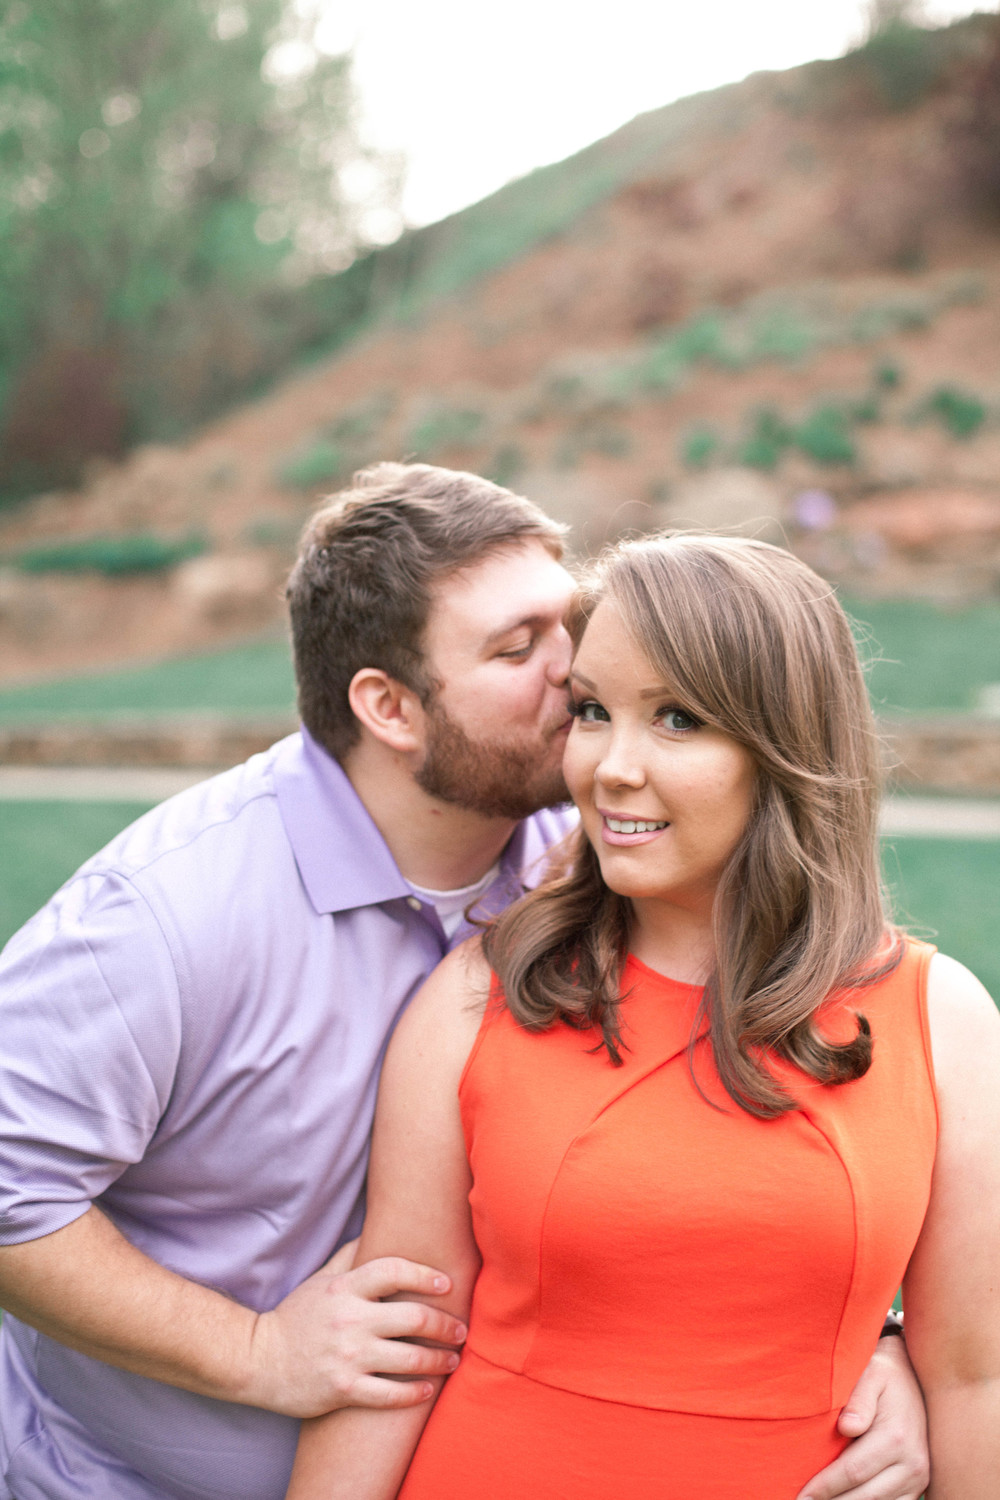 zach_gabbie_engagement_poured_out_photography-39.jpg